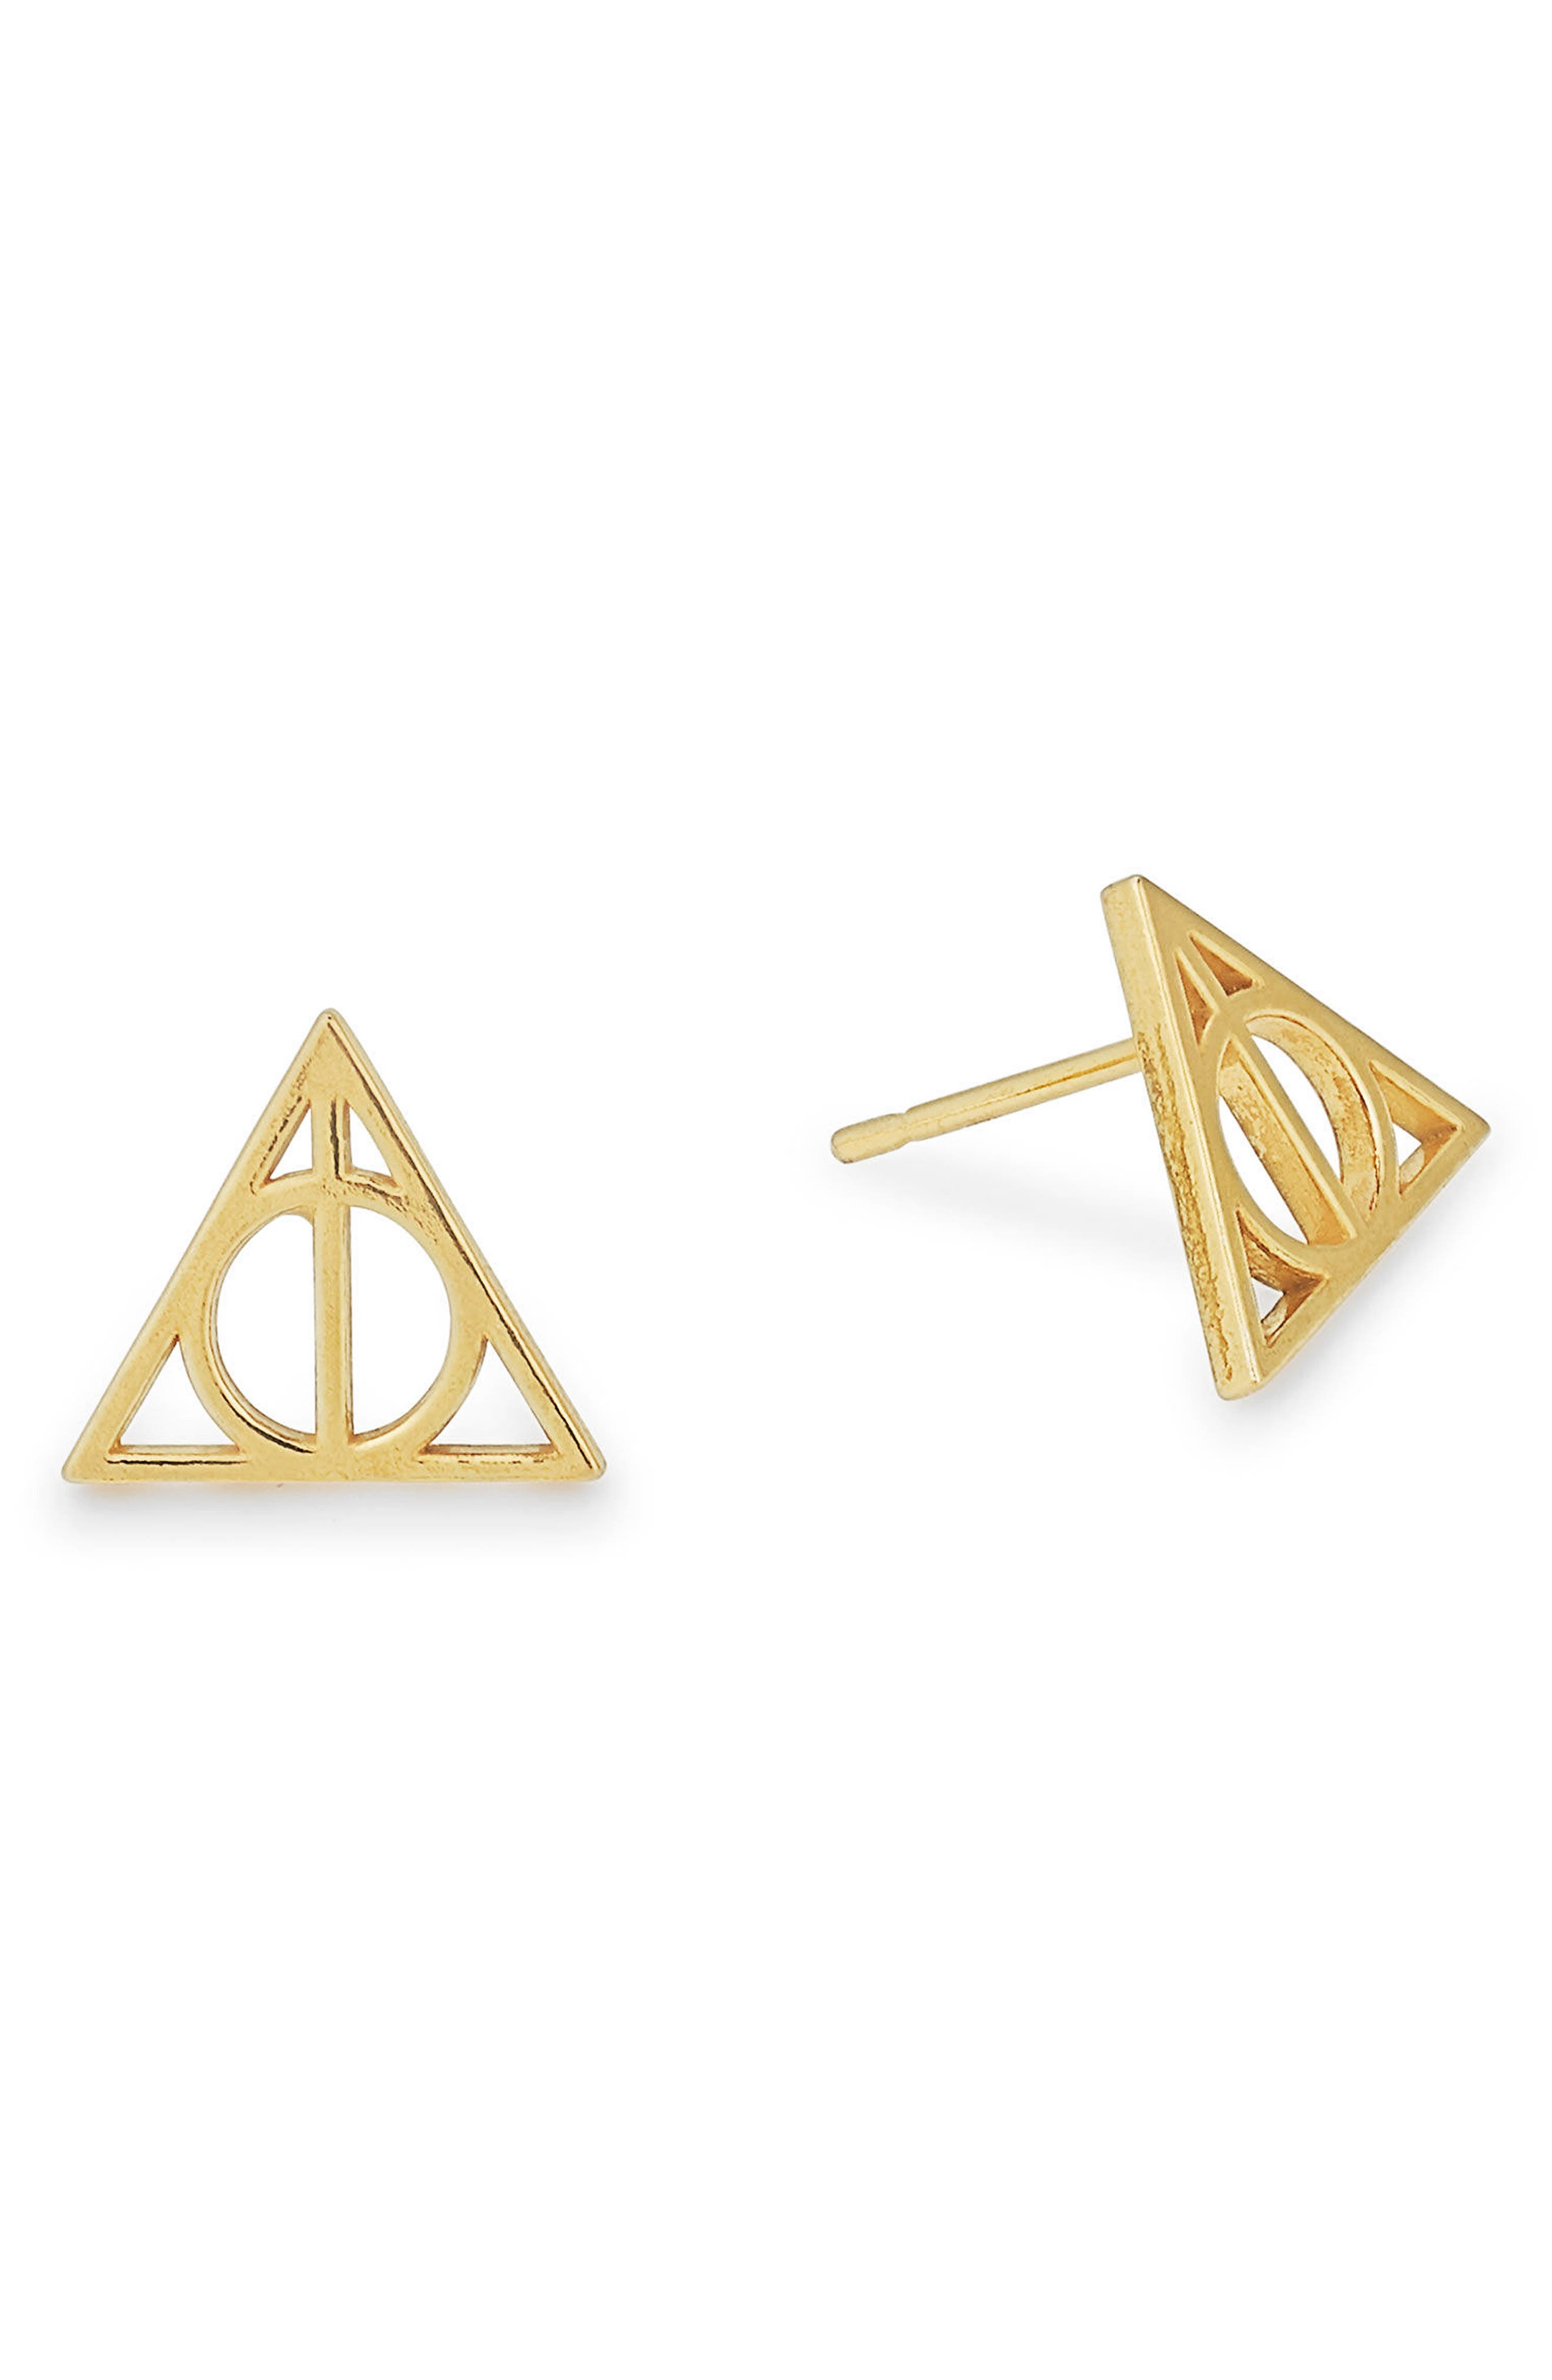 Alex and Ani Harry Potter™ Deathly Hallows™ Earrings